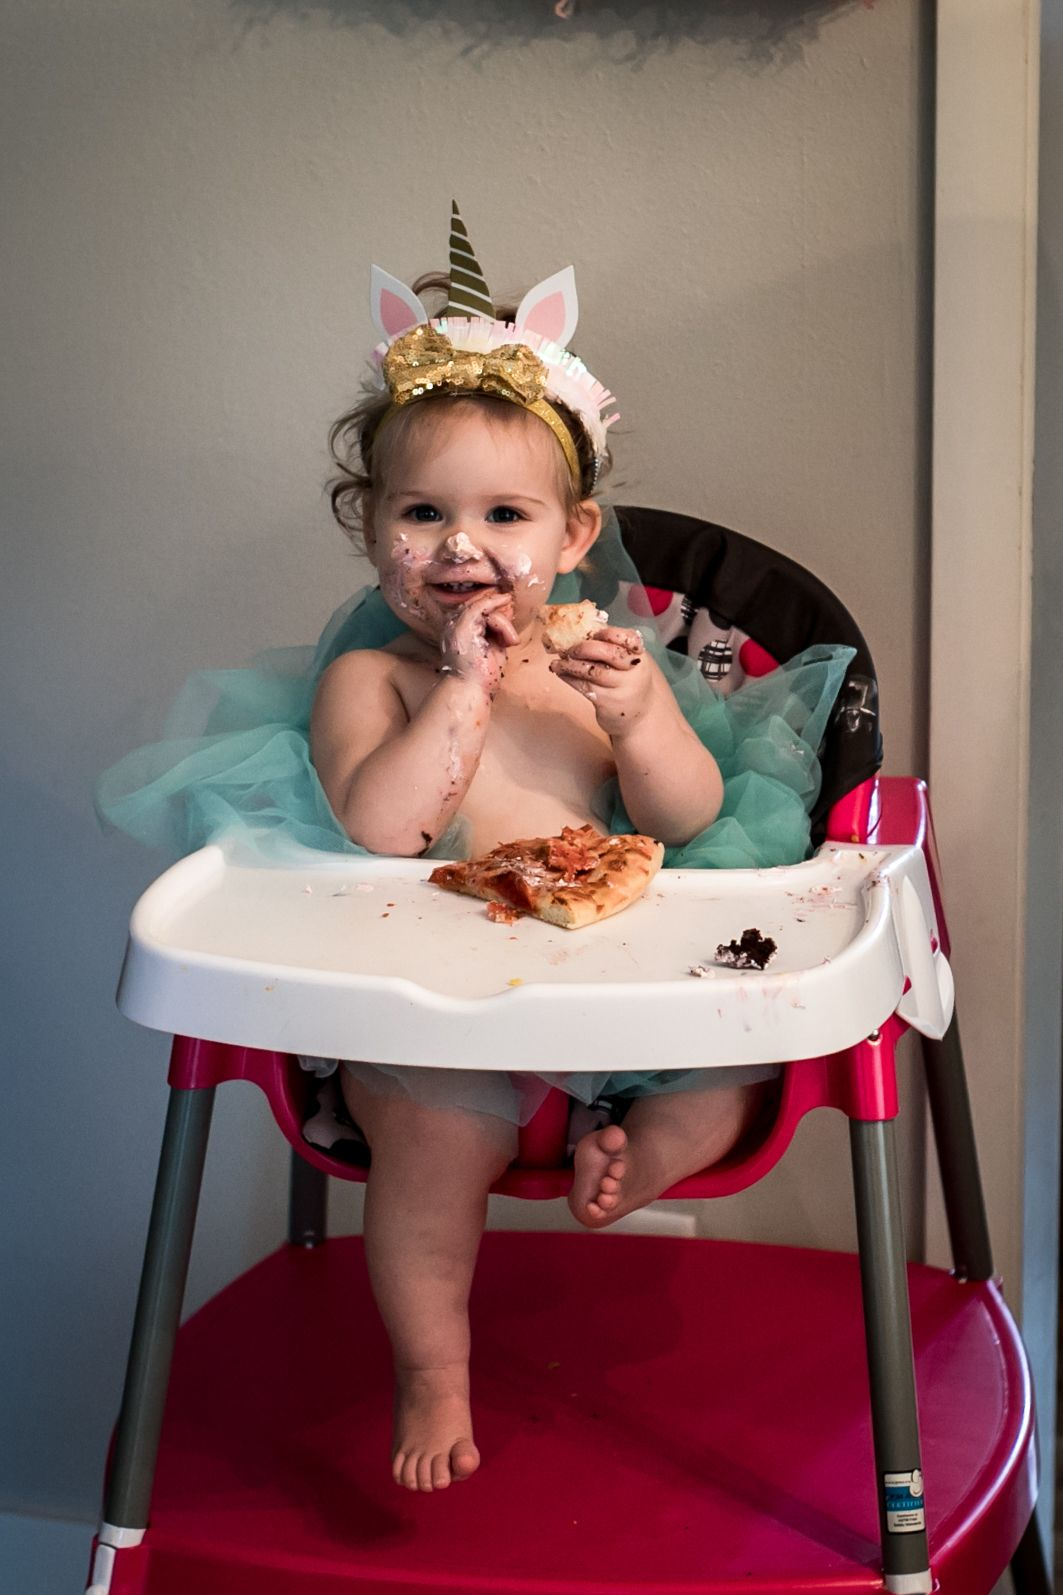 One year old enjoying a piece of pizza on her 1st birthday in Sioux City, Ia.